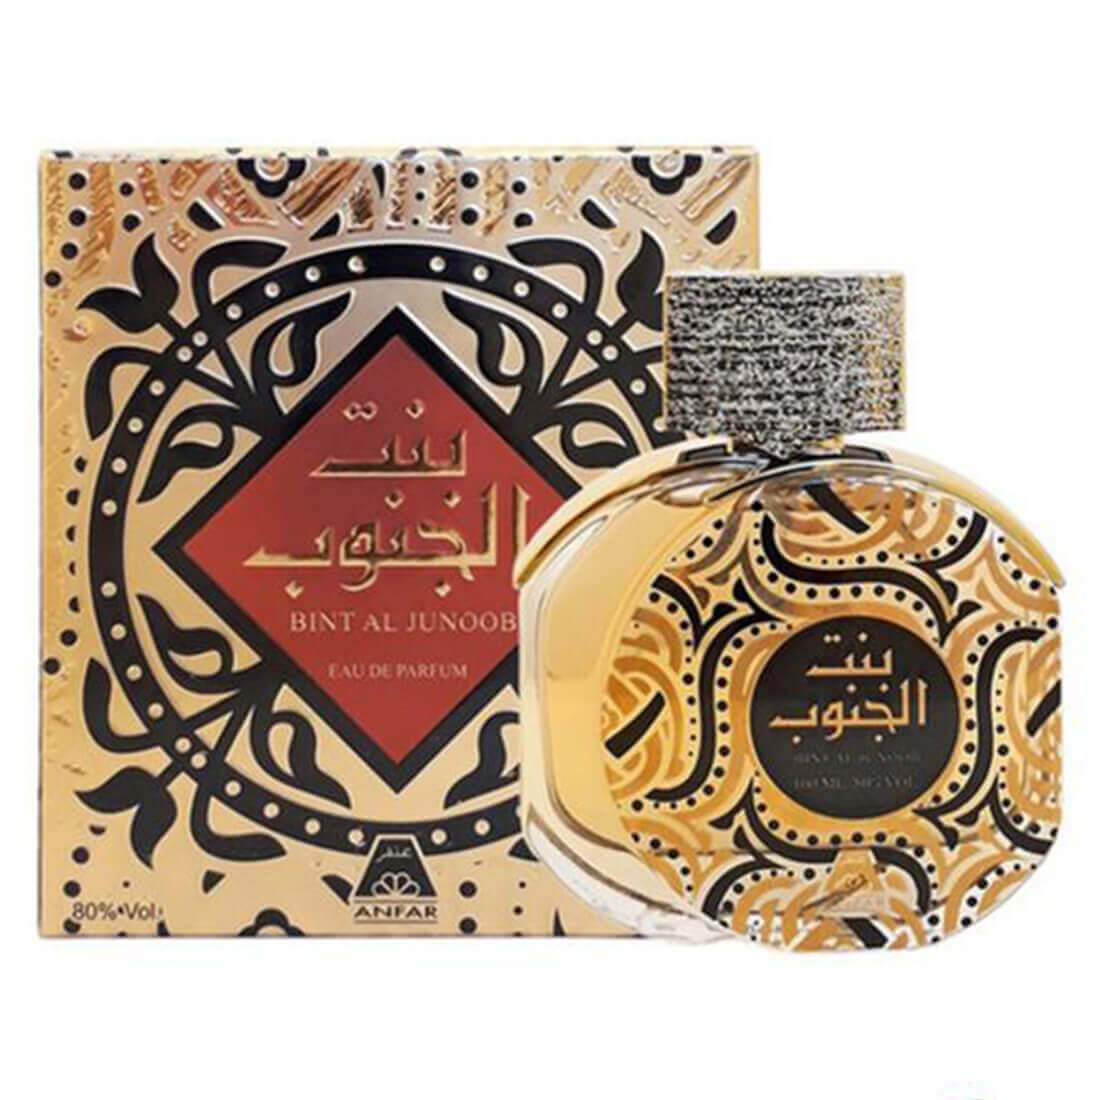 Anfar Bint Al Junoob Spray - 100ml